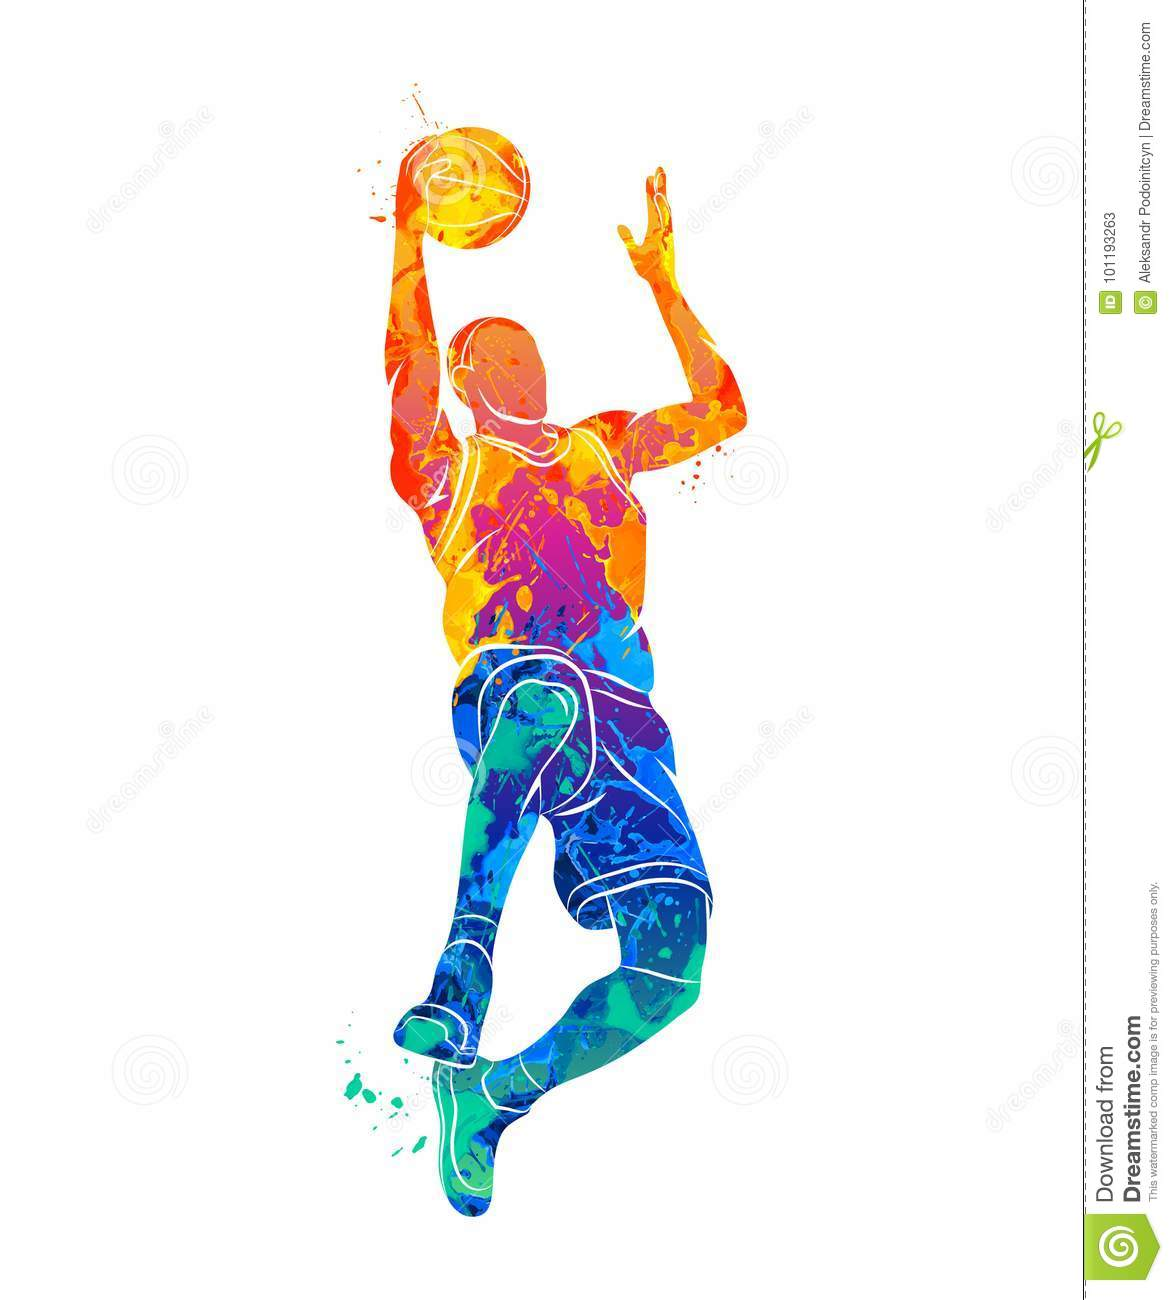 Basketball-Spieler, Ball